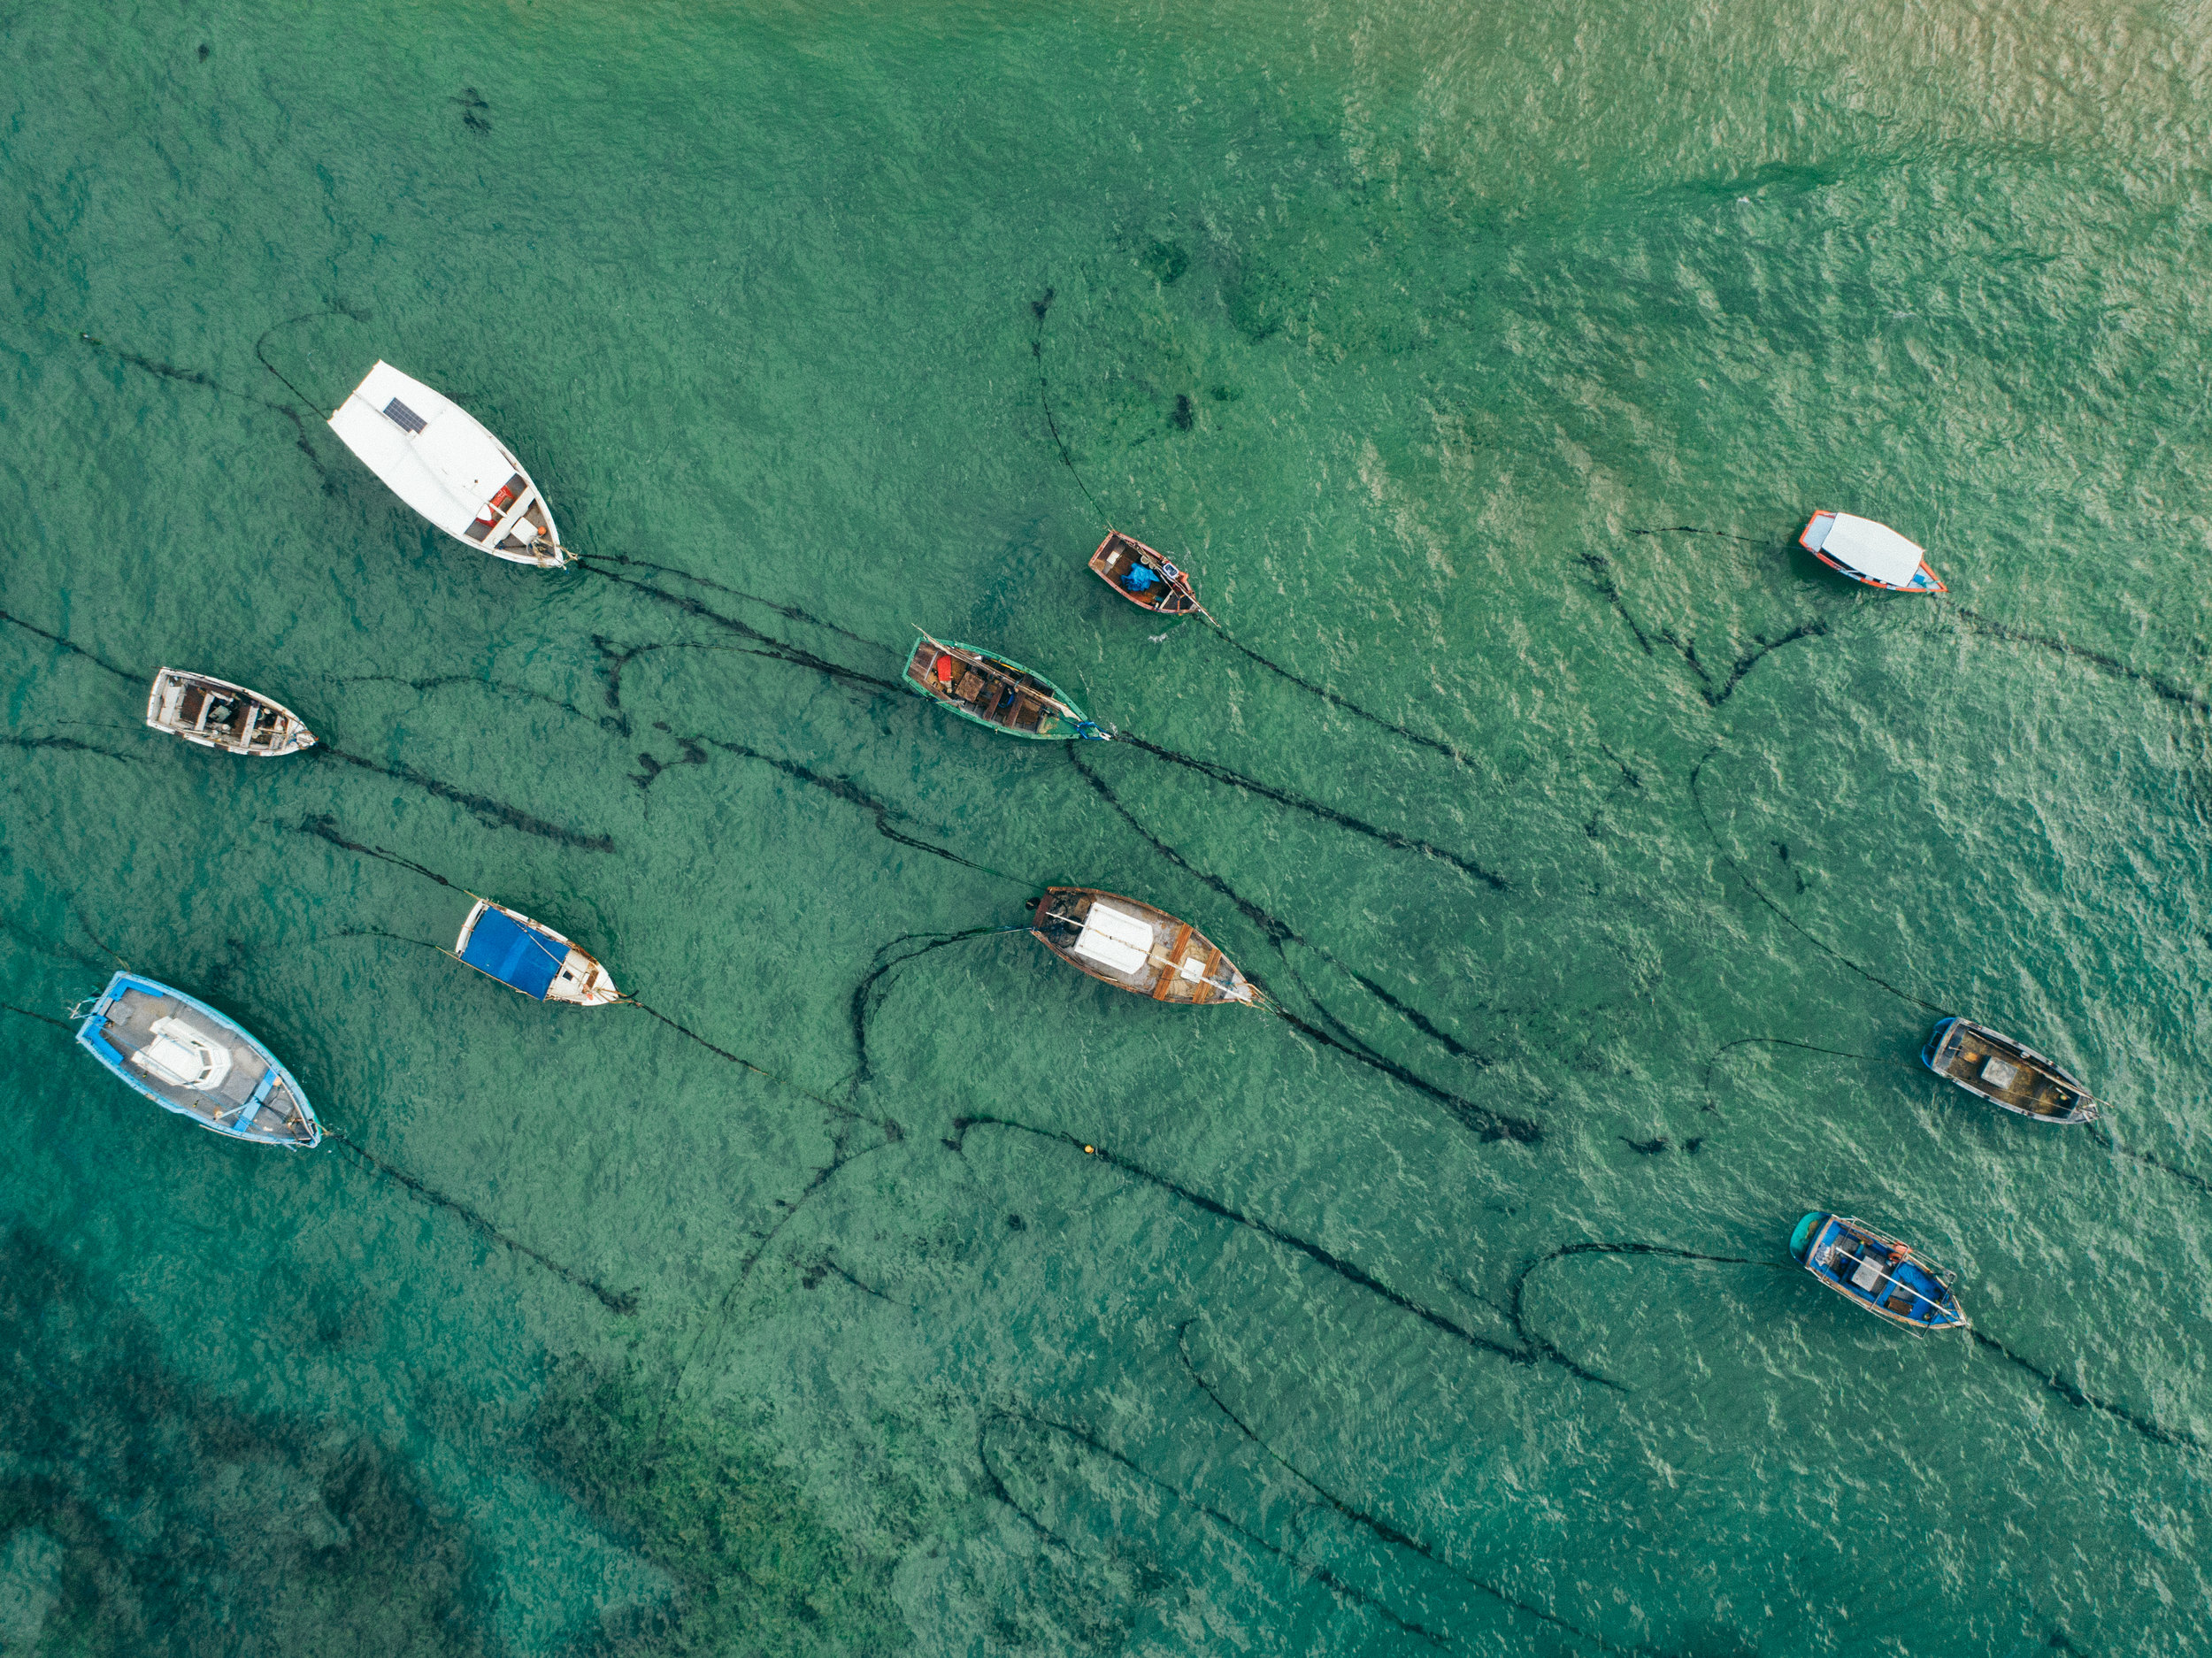 Drone view of fishing boats in Itacaré, where ETIV do Brasil - Volunteer in Brazil is located